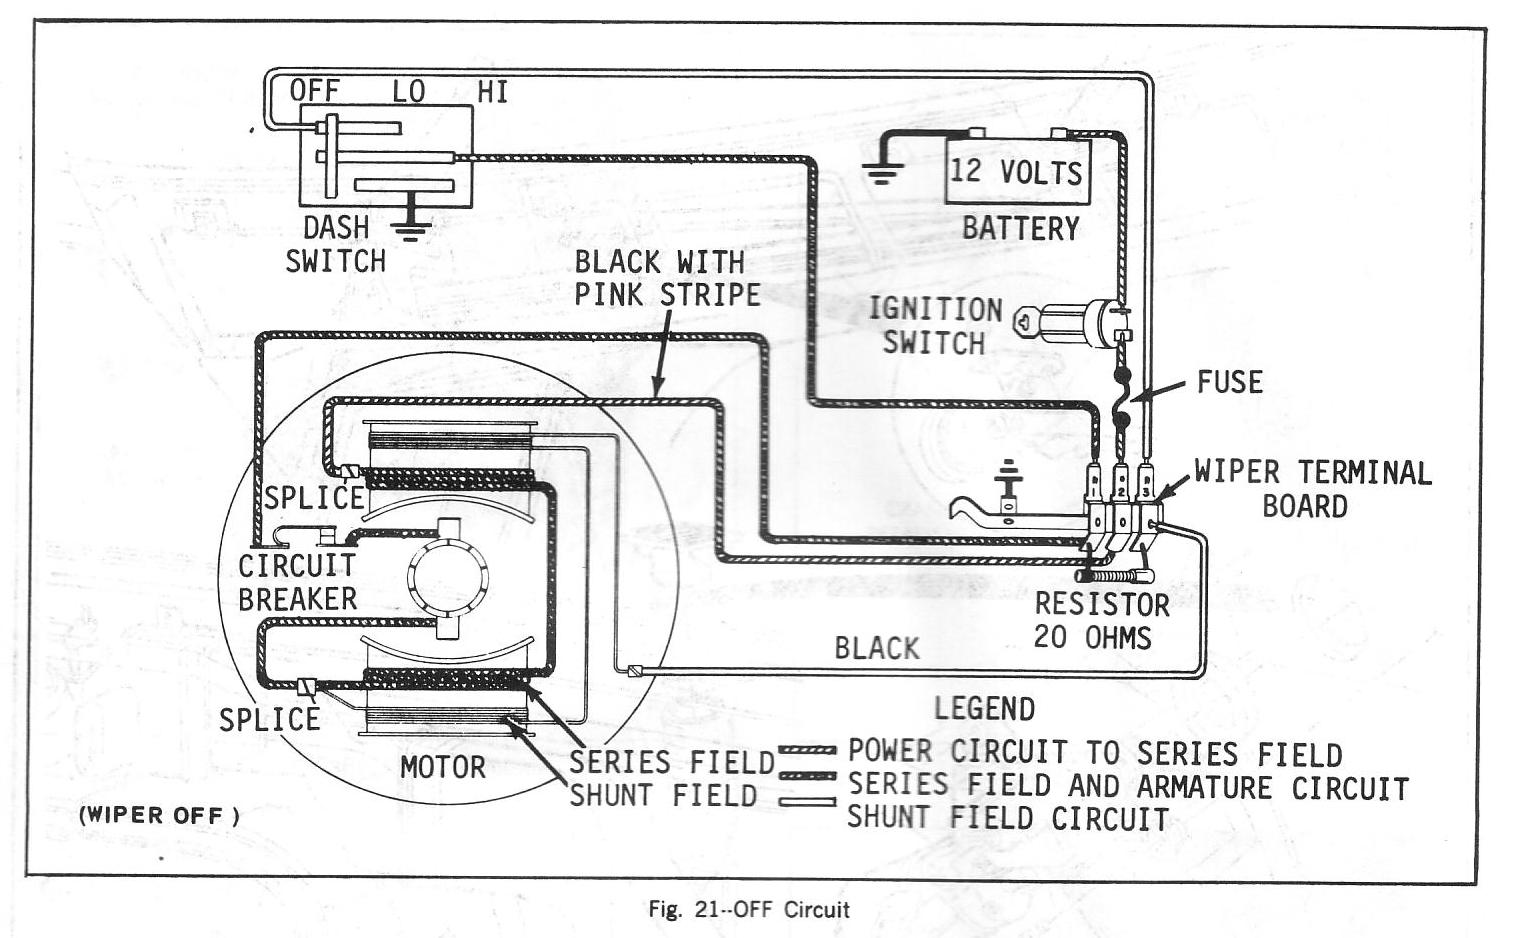 hight resolution of windshield wiper switch wiring wiring diagram database 1979 ford f150 windshield wiper wiring 1977 ford windshield wiper wiring